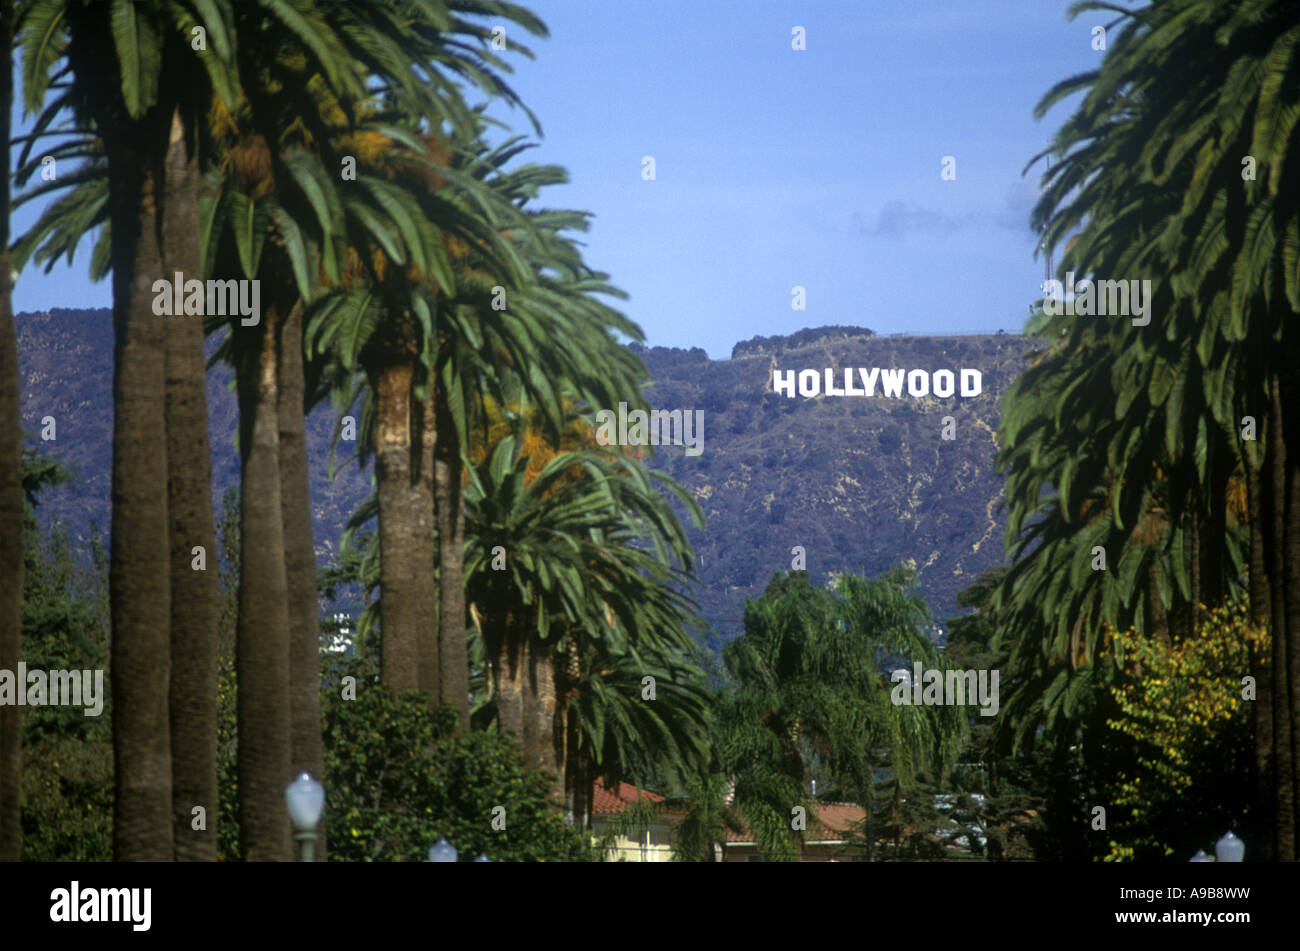 PALM TREES HOLLYWOOD SIGN WINDSOR BOULEVARD LOS ANGELES CALIFORNIA USA